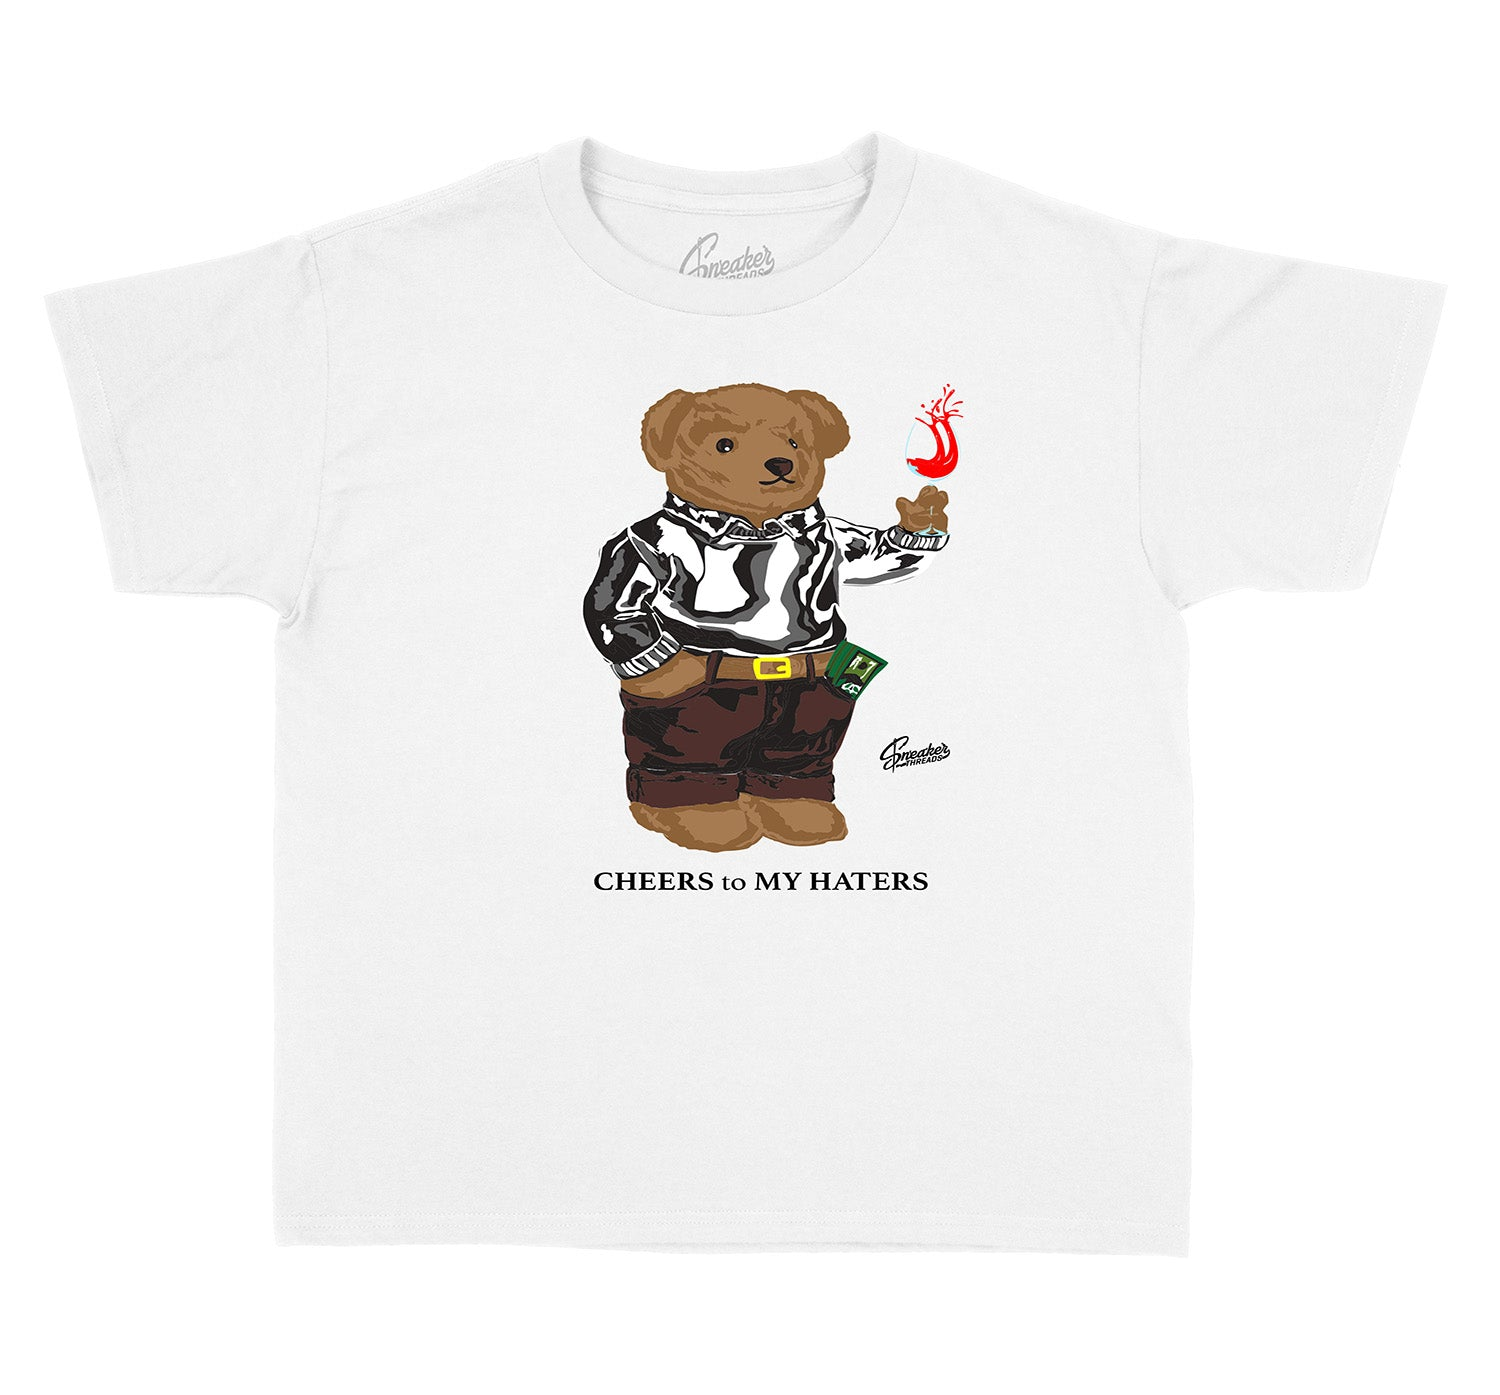 Yeezy Cloud White 350 Cheers Bear shirt for kids